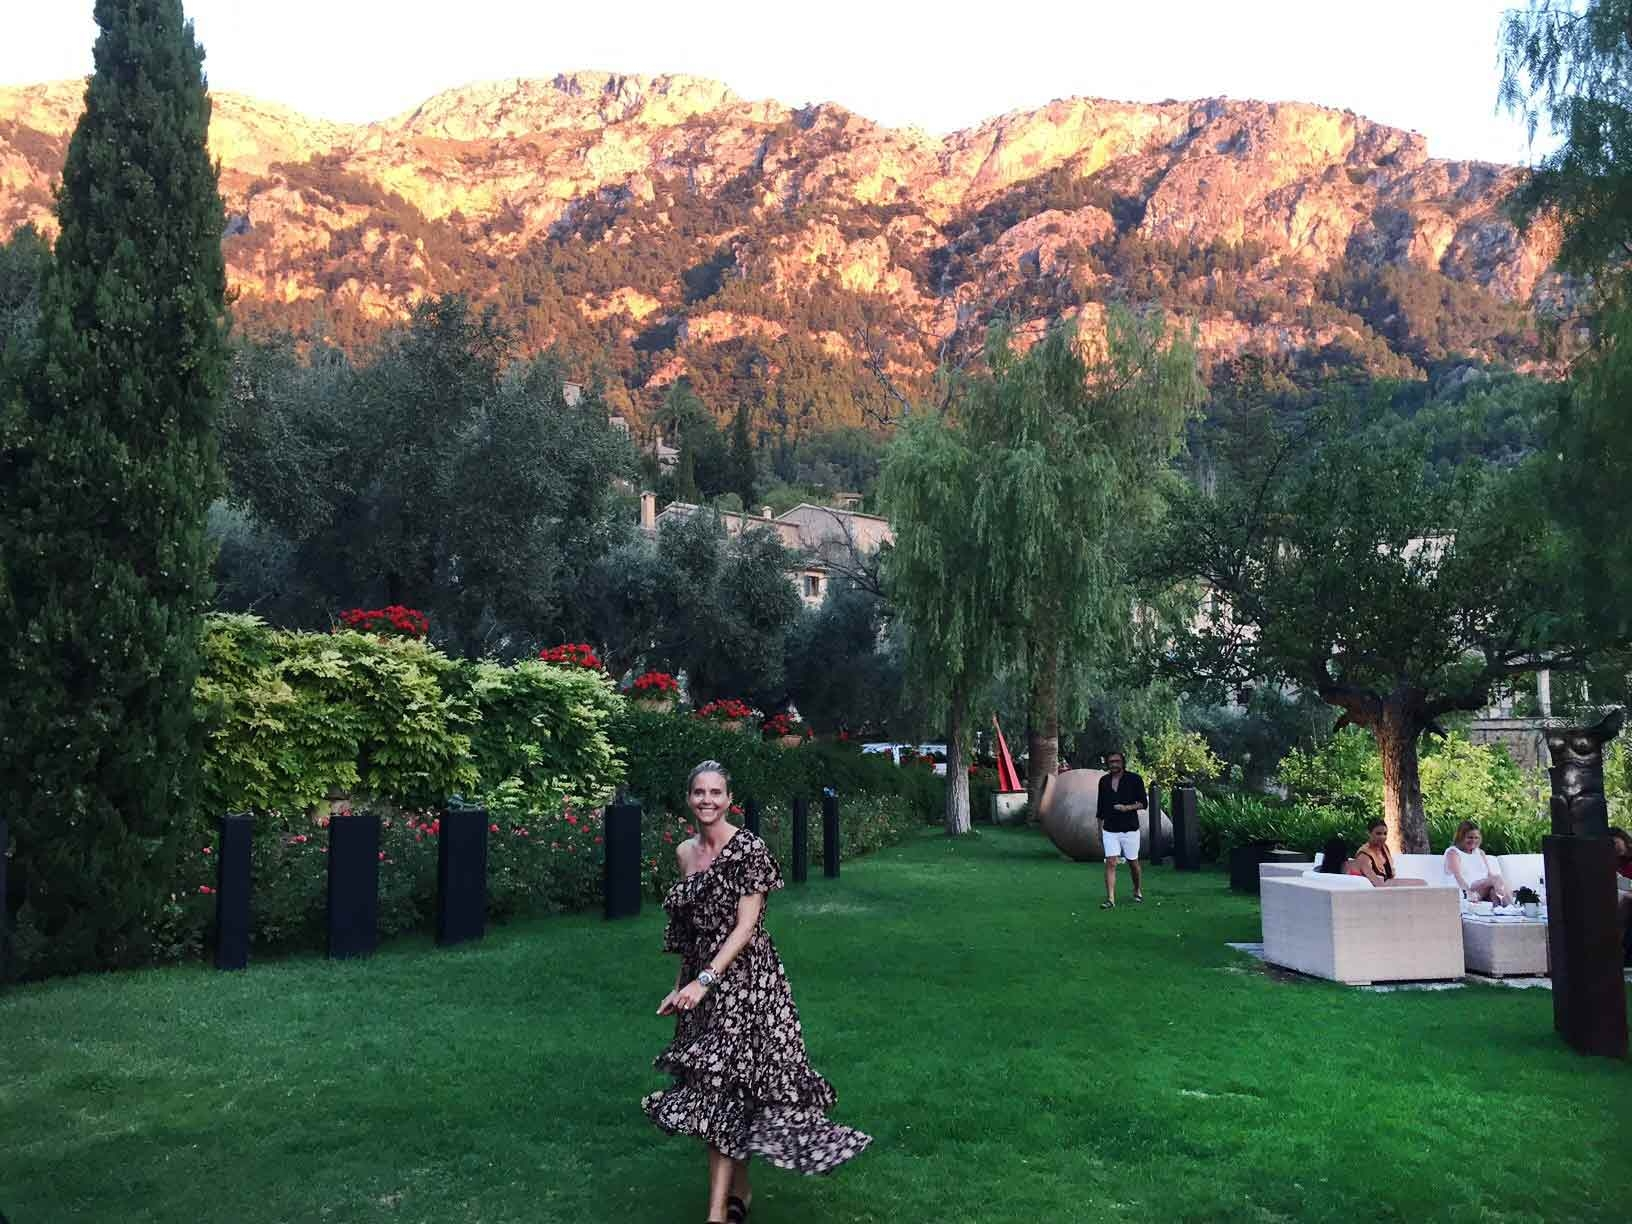 Sophie Lee stands in a garden full of lush green plants at La Residencia for sunset drinks